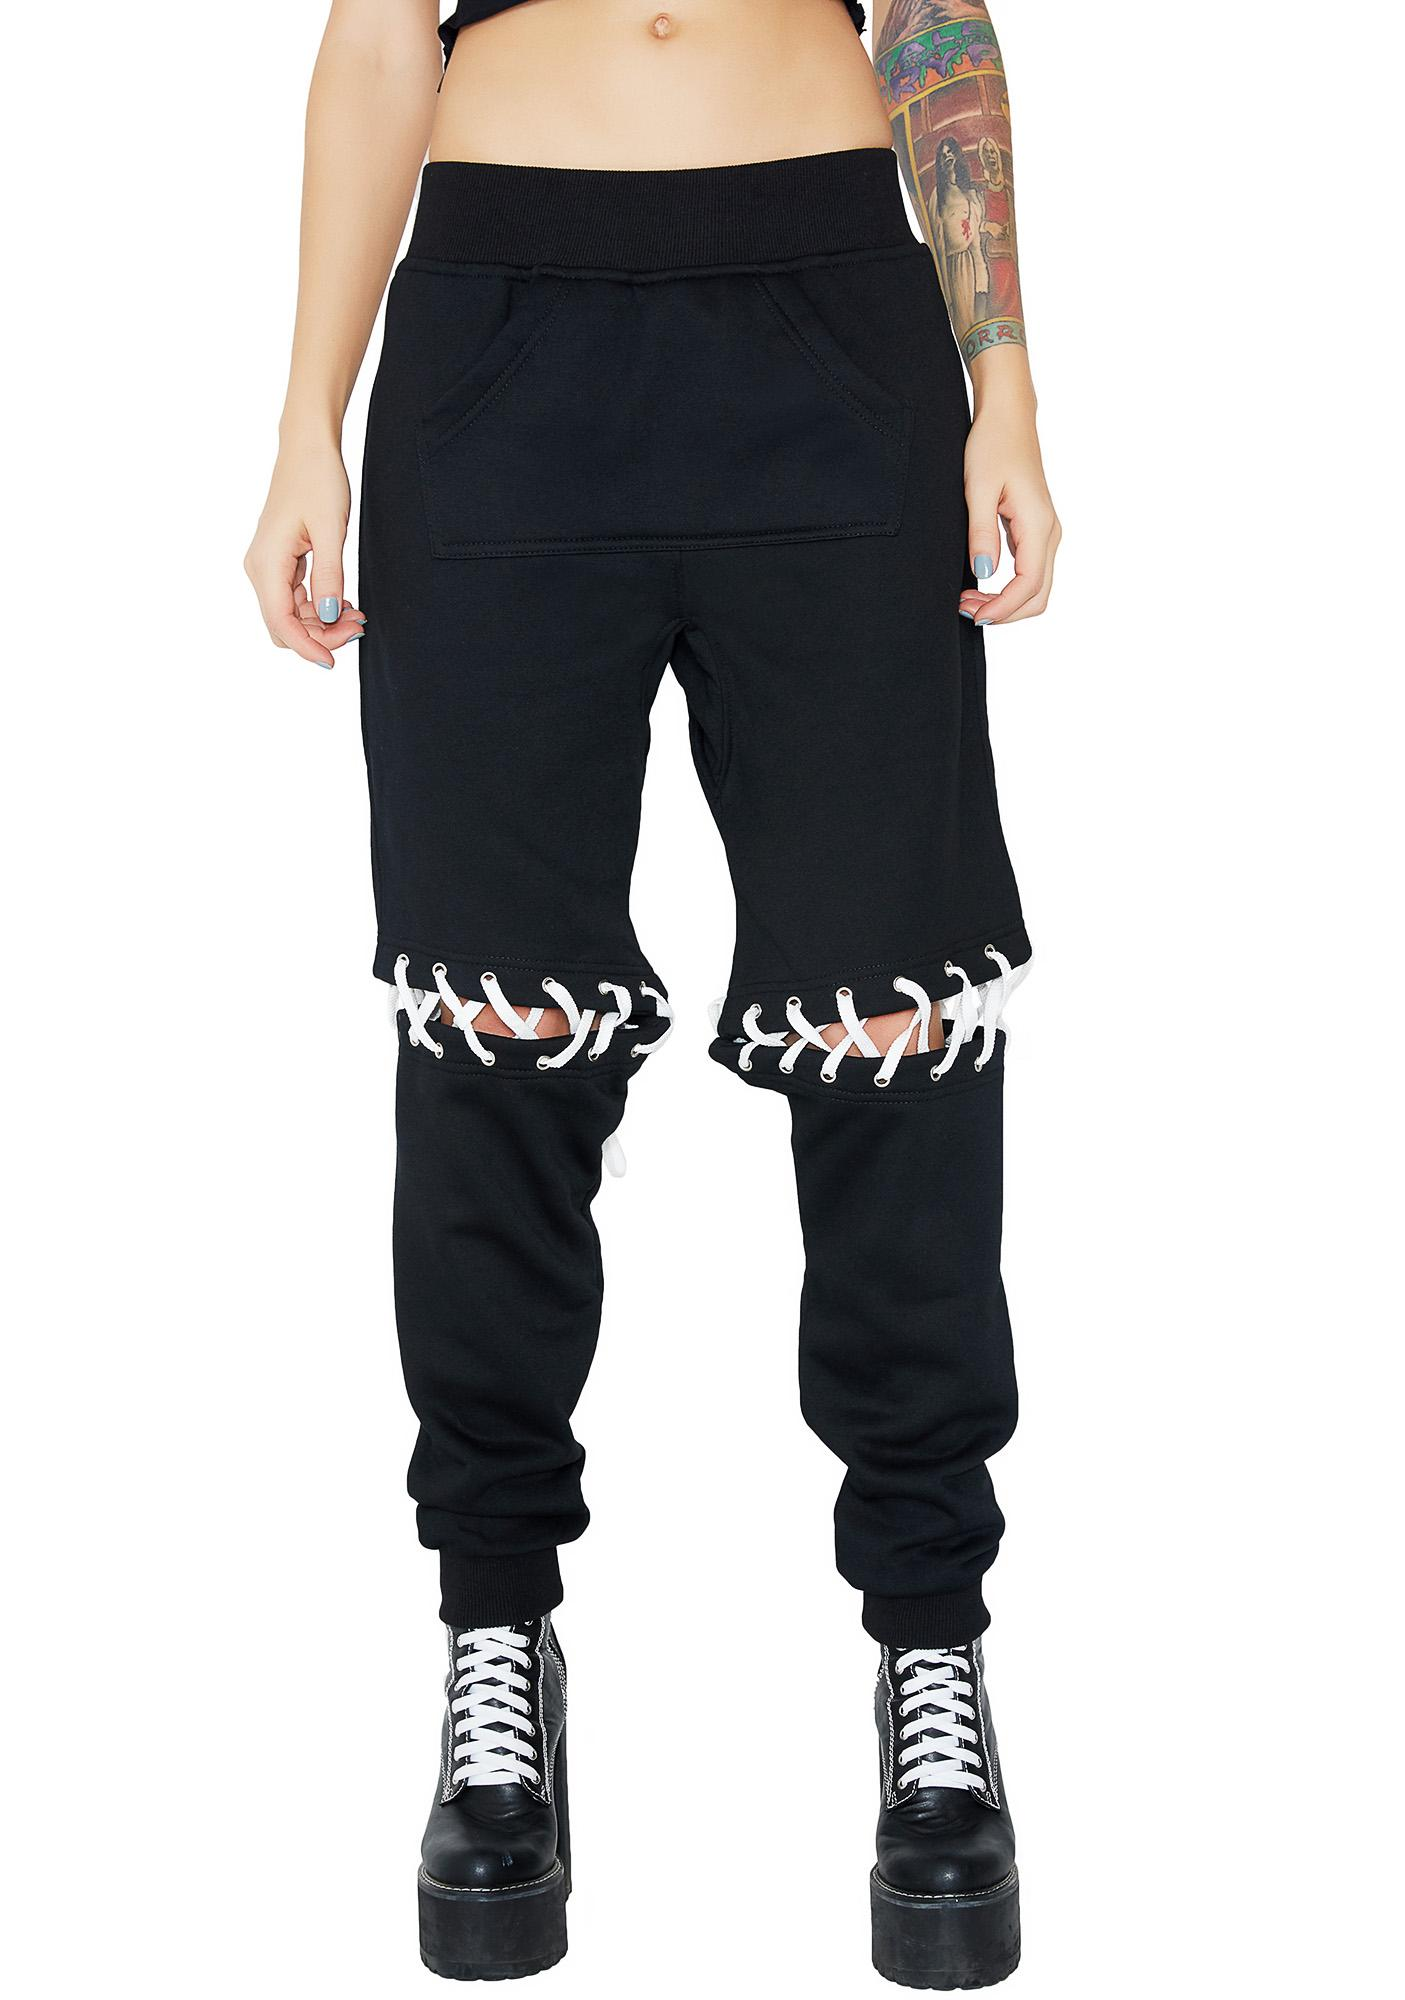 Current Mood Ill Will Lace-Up Sweatpants